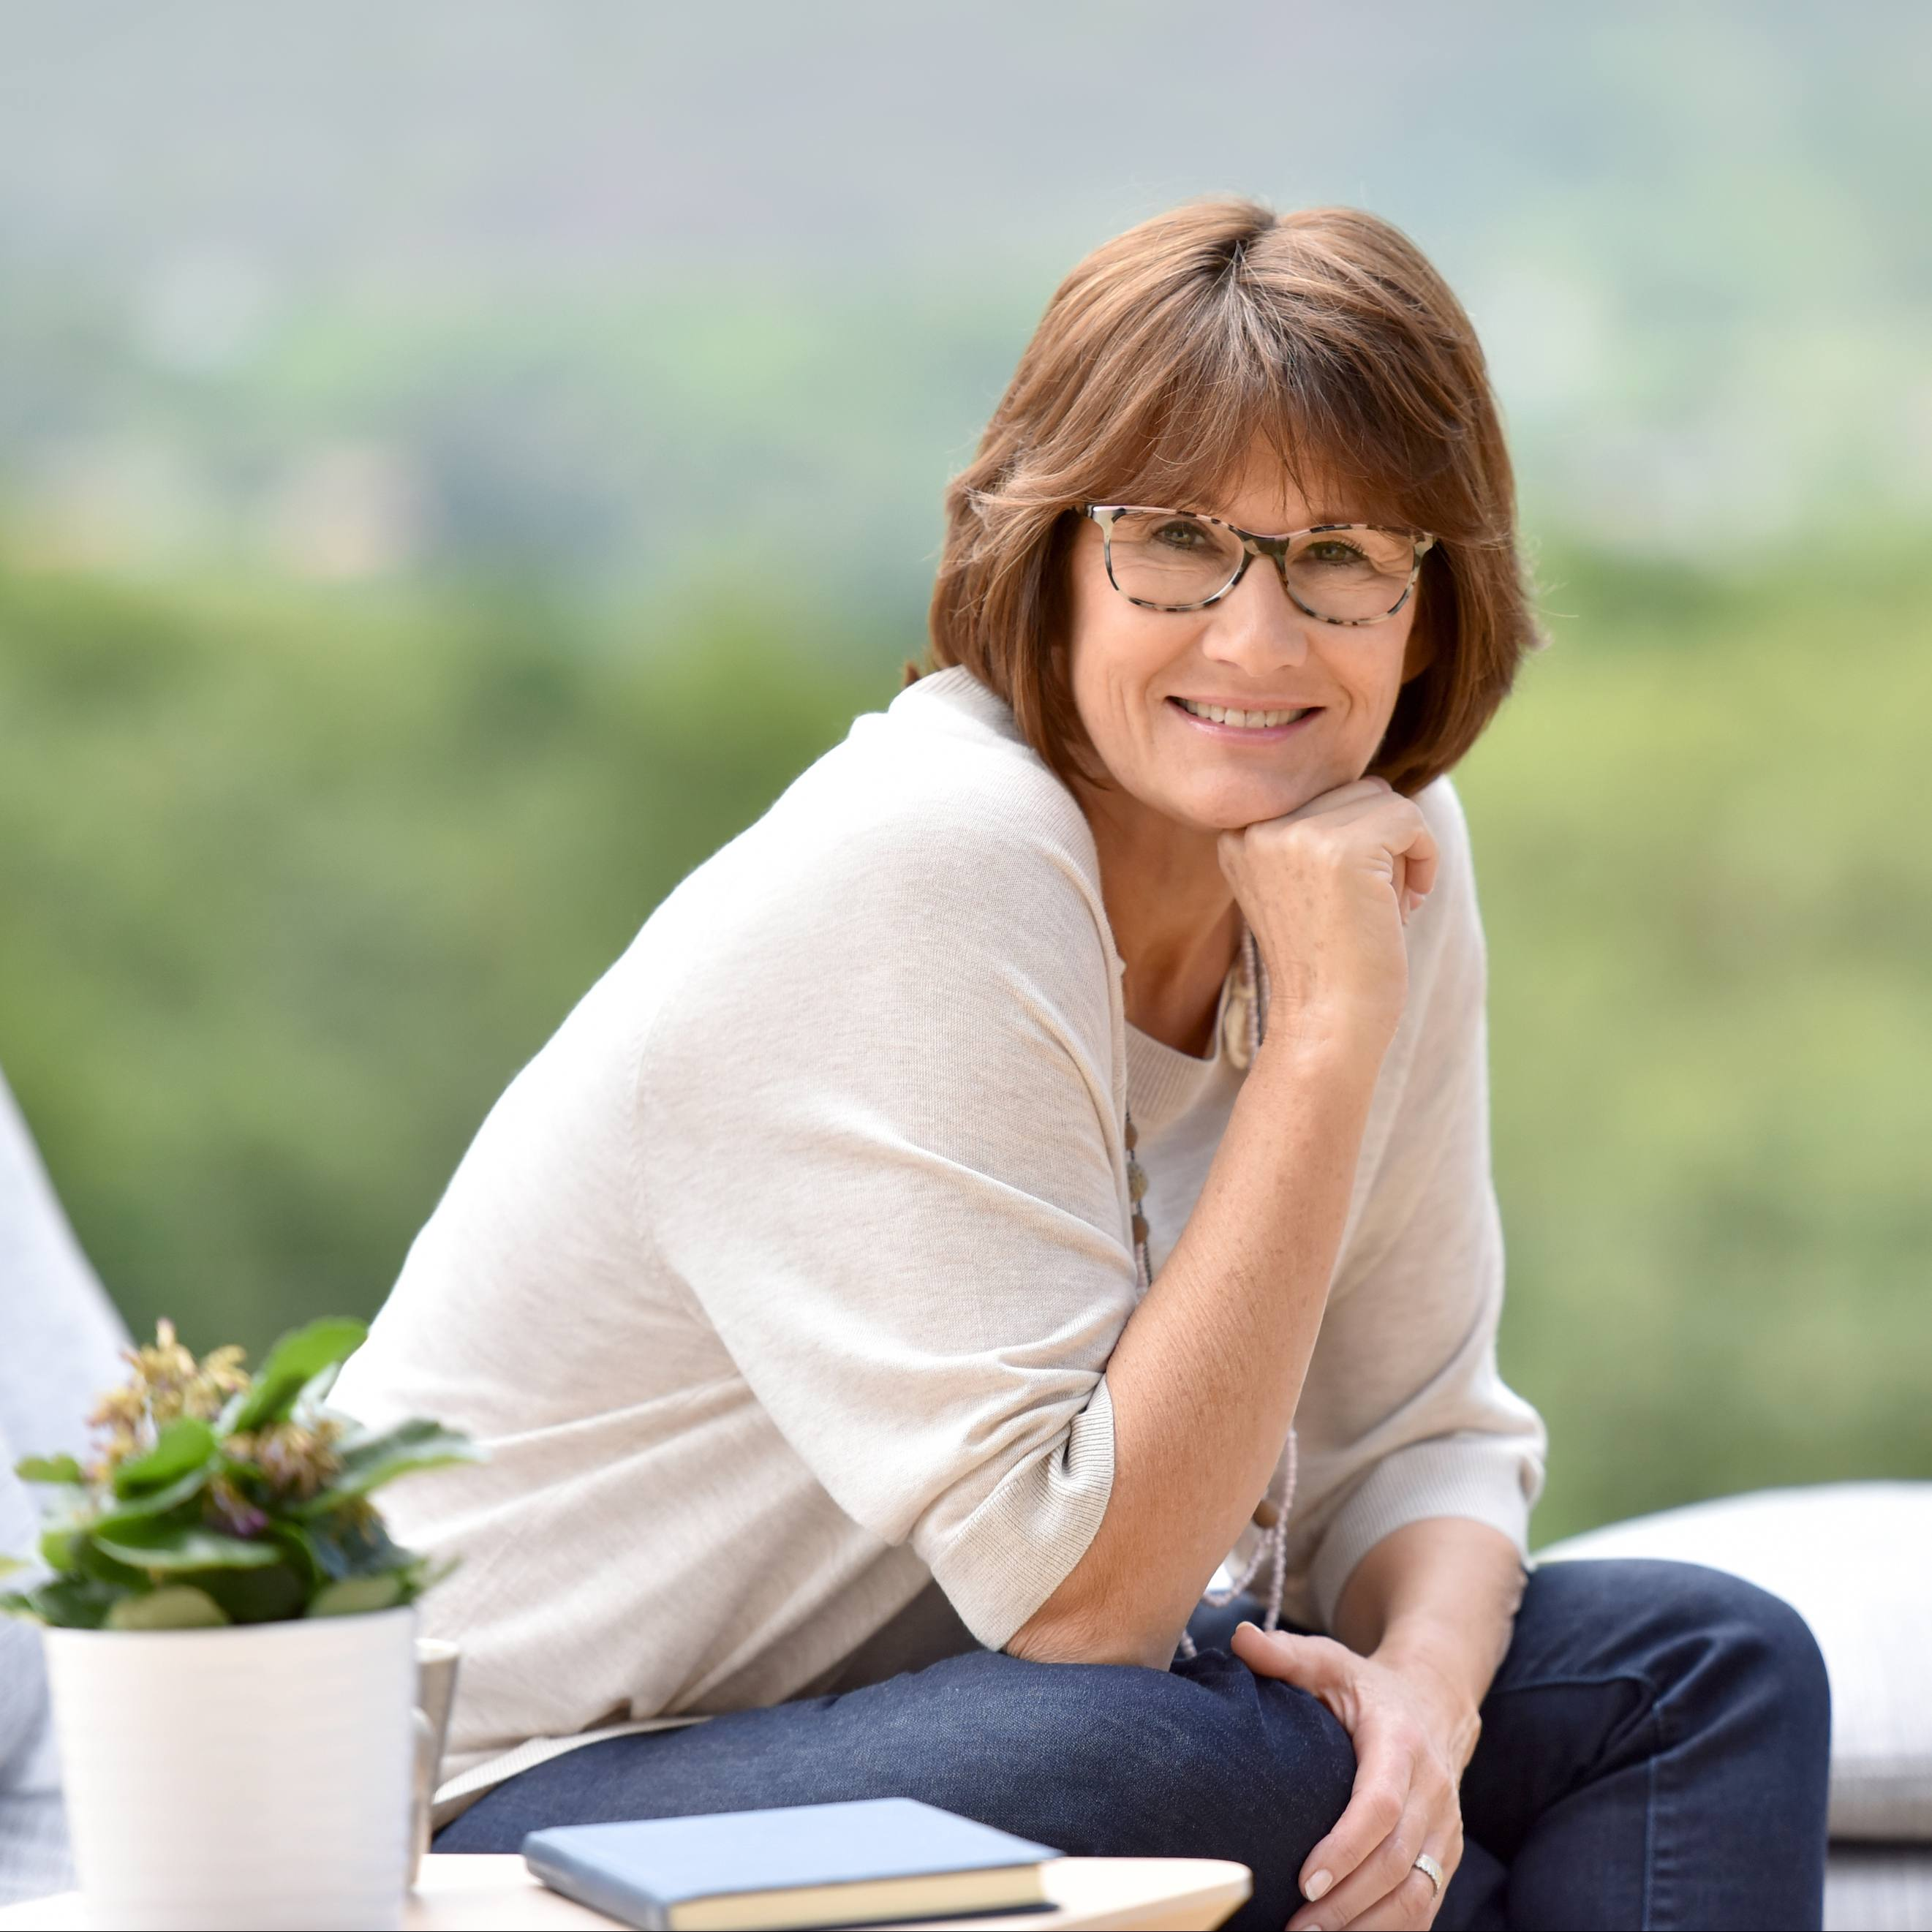 a white woman with short brown hair and glasses, sitting on an outside couch and smiling